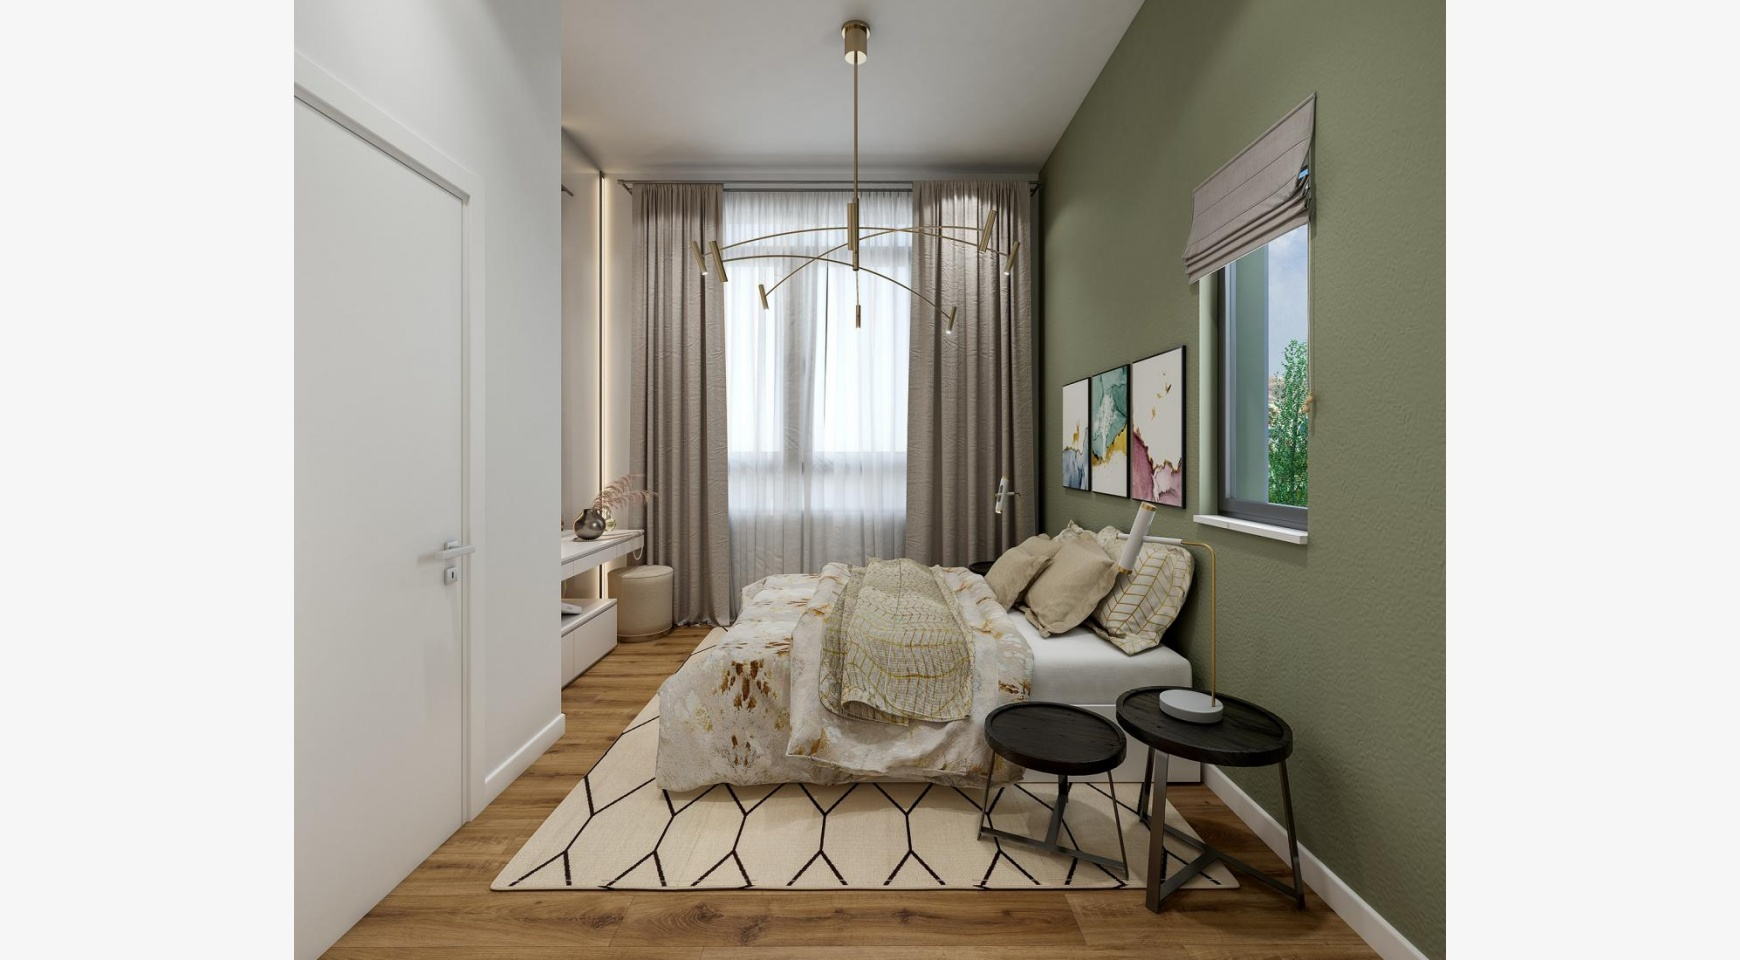 Urban City Residences, Block B. New Spacious 2 Bedroom Apartment 302 in the City Centre - 5